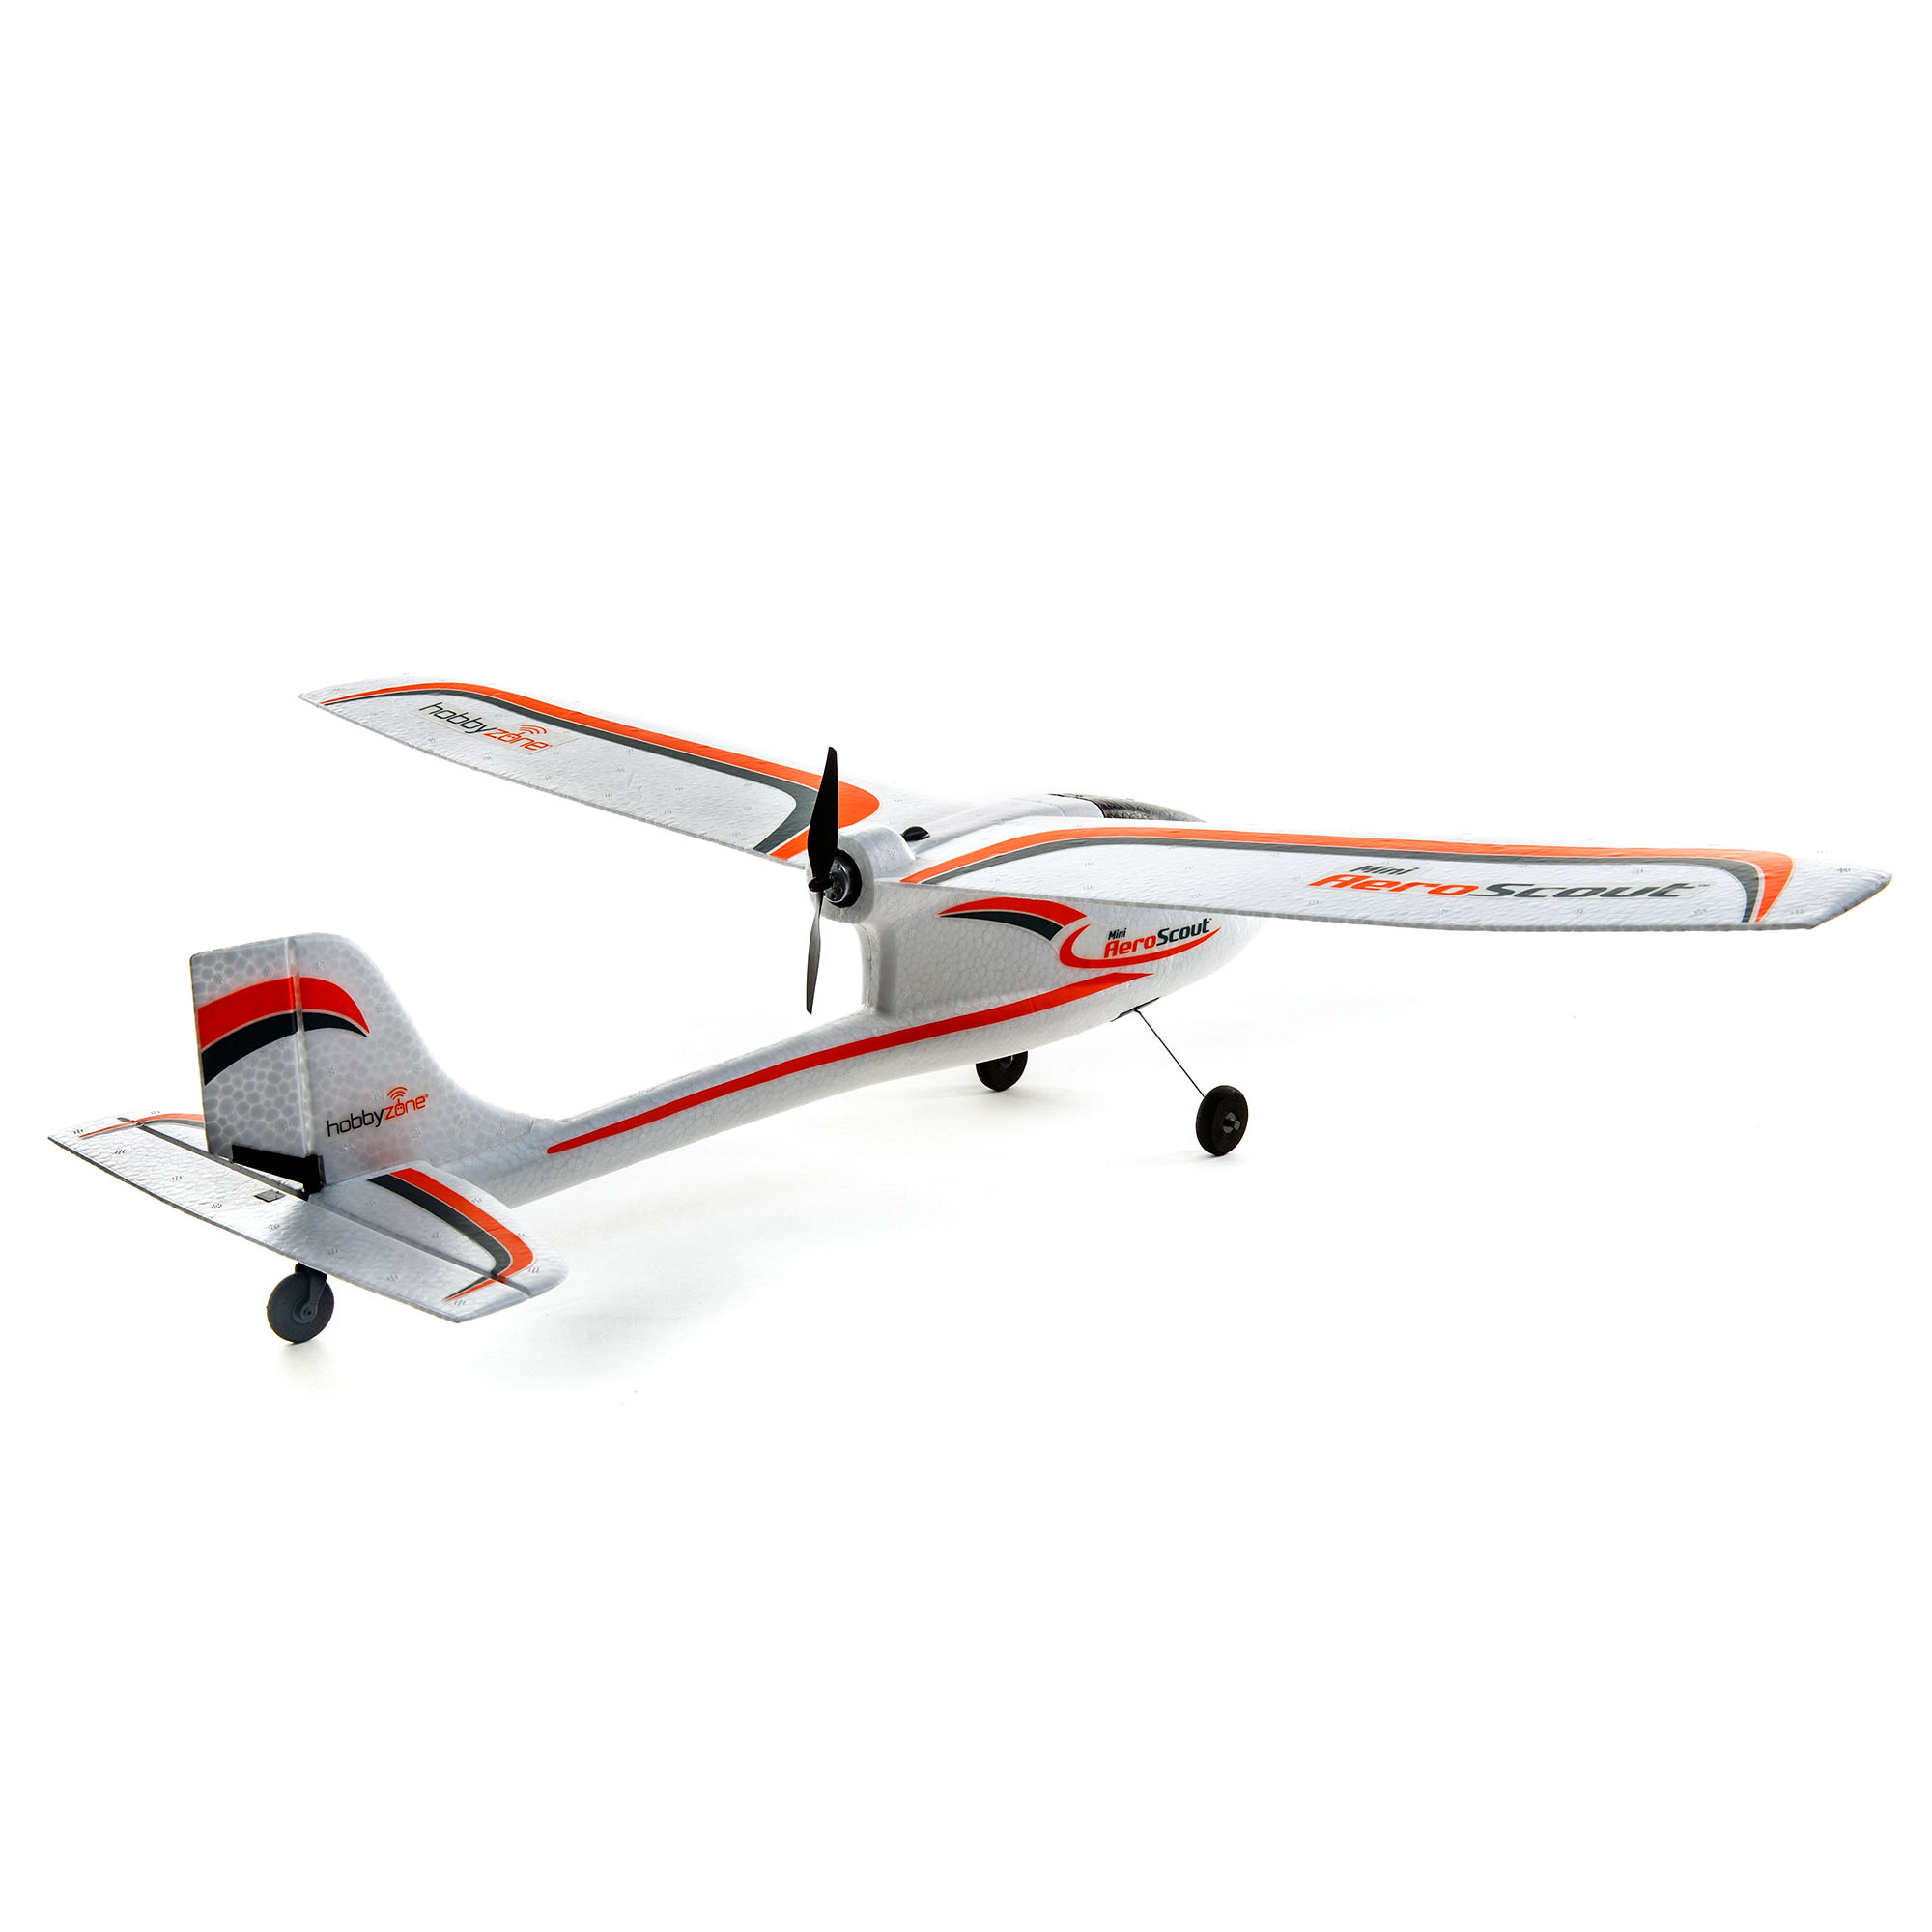 Mini AeroScout hobbyzone